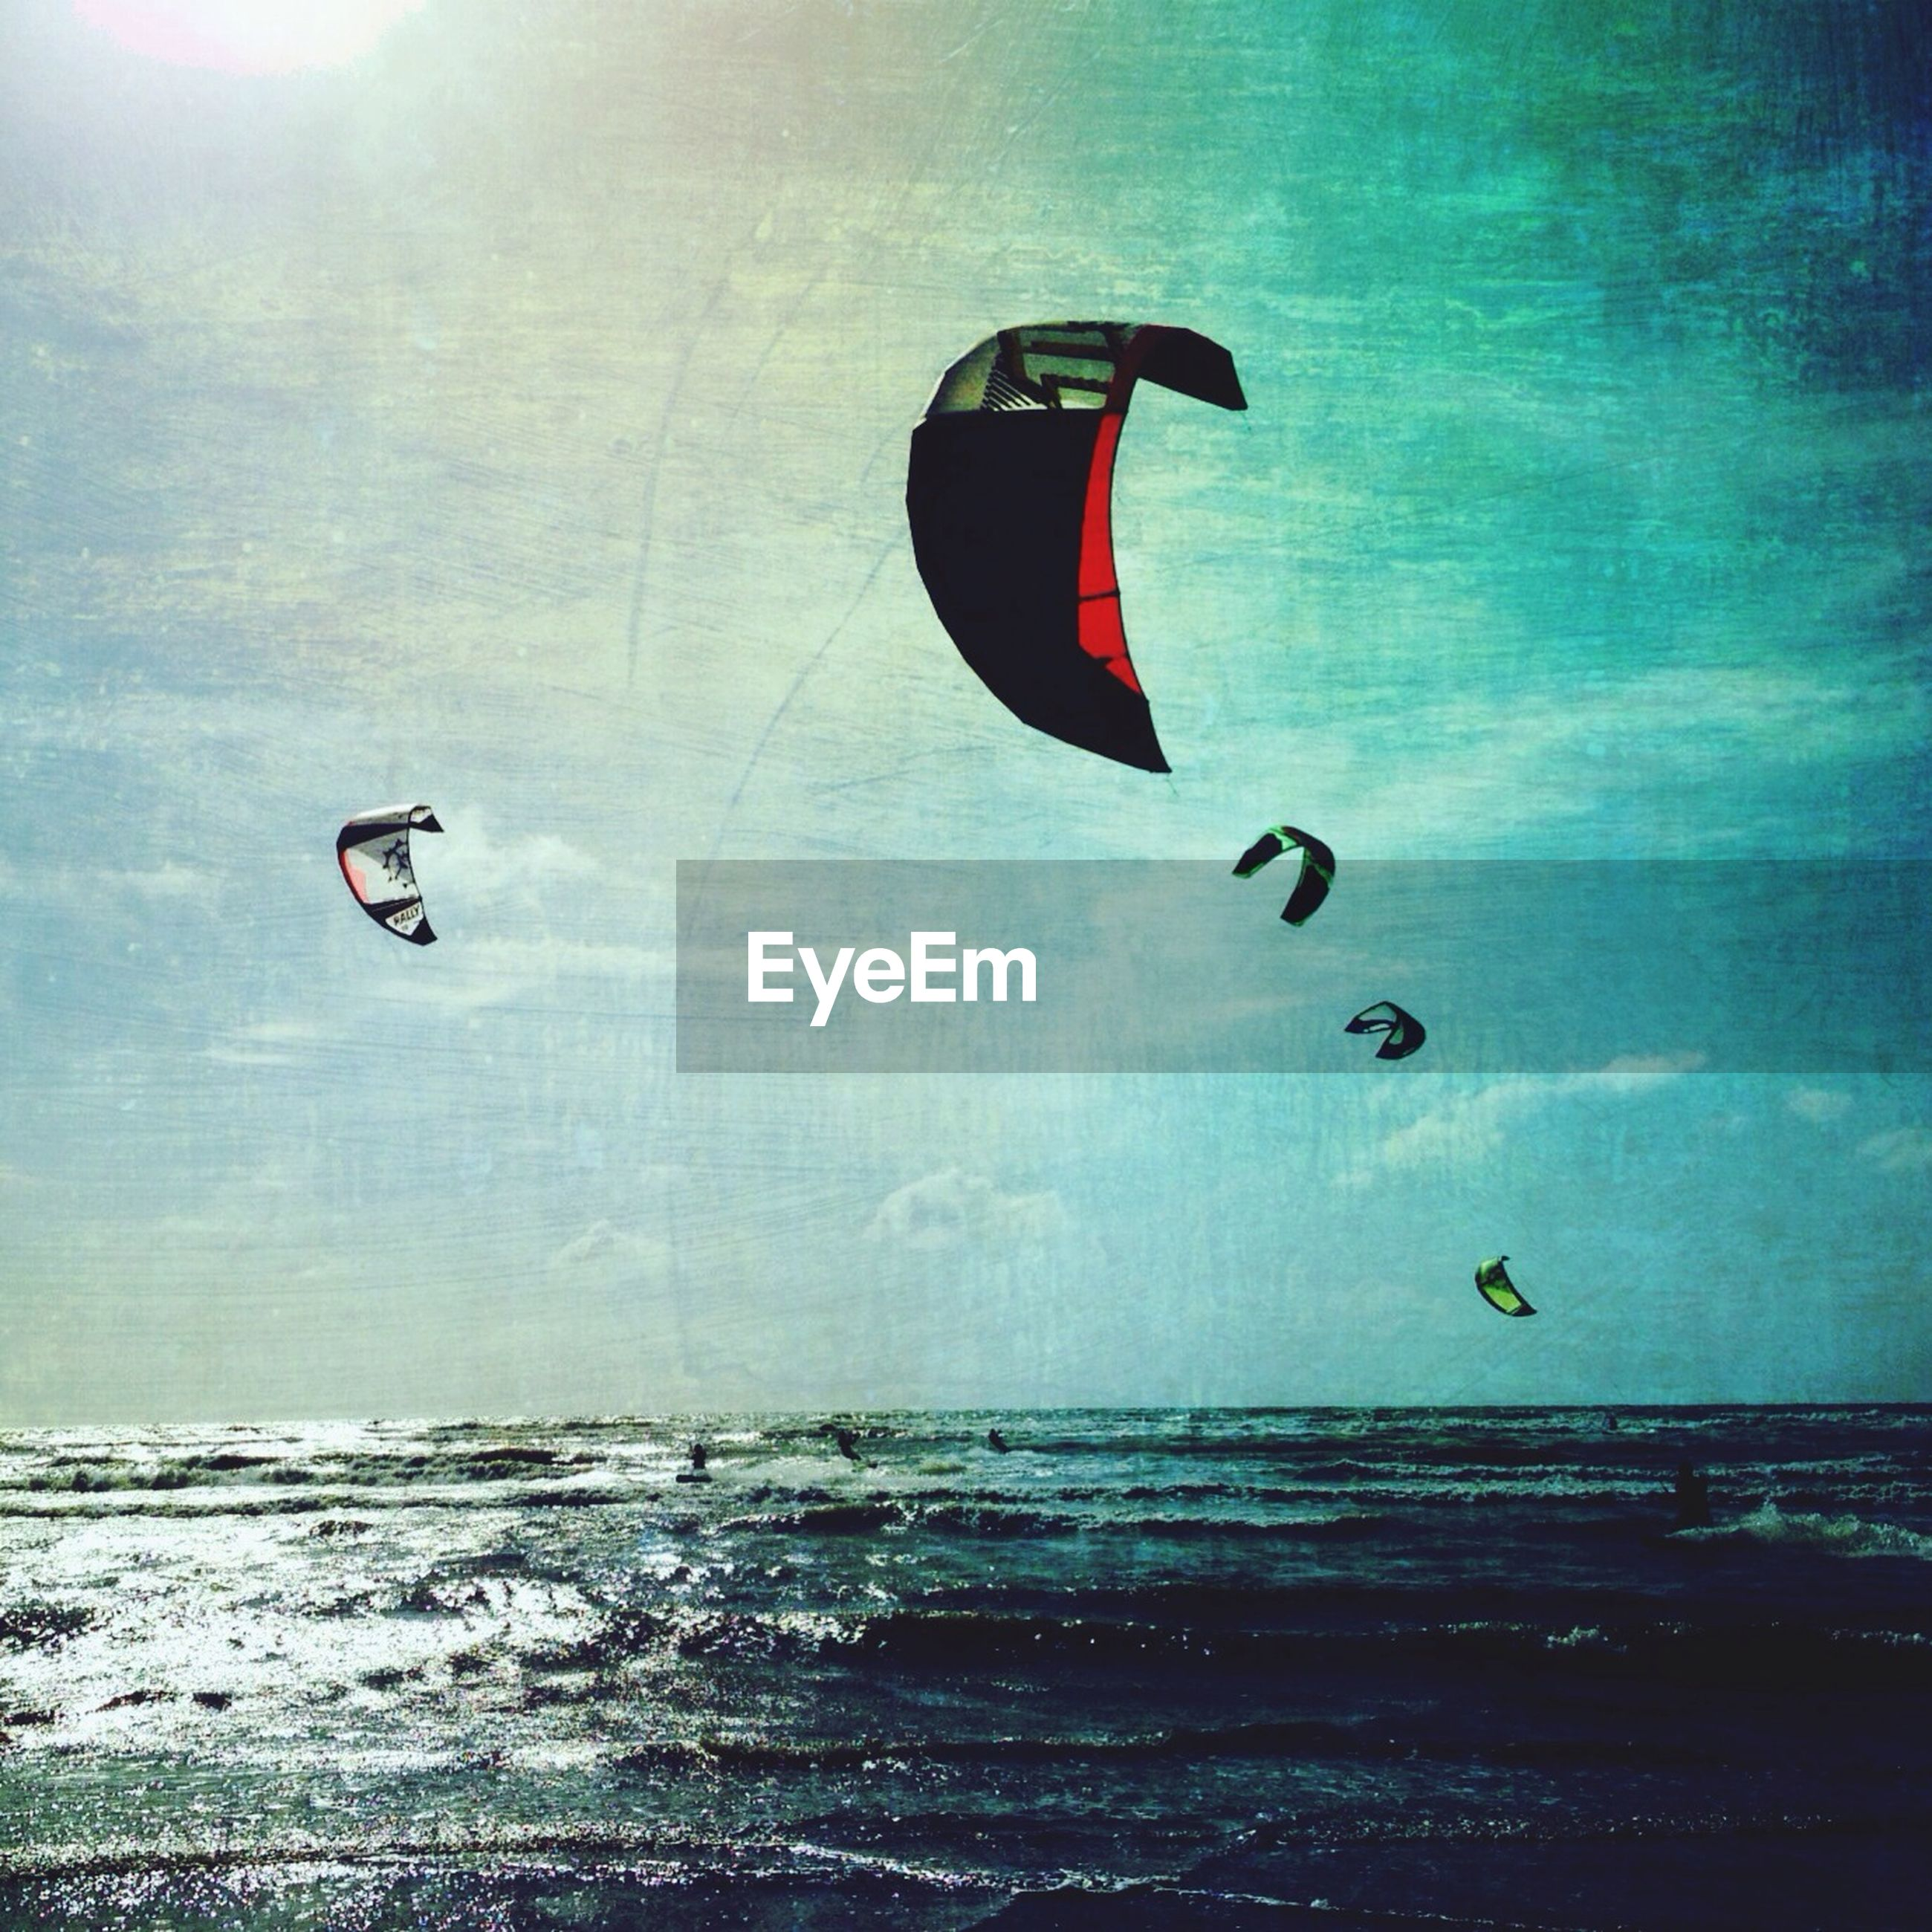 parachute, mid-air, water, sea, adventure, flying, extreme sports, paragliding, sport, waterfront, transportation, horizon over water, leisure activity, tranquility, sky, scenics, exhilaration, parachuting, vacations, one person